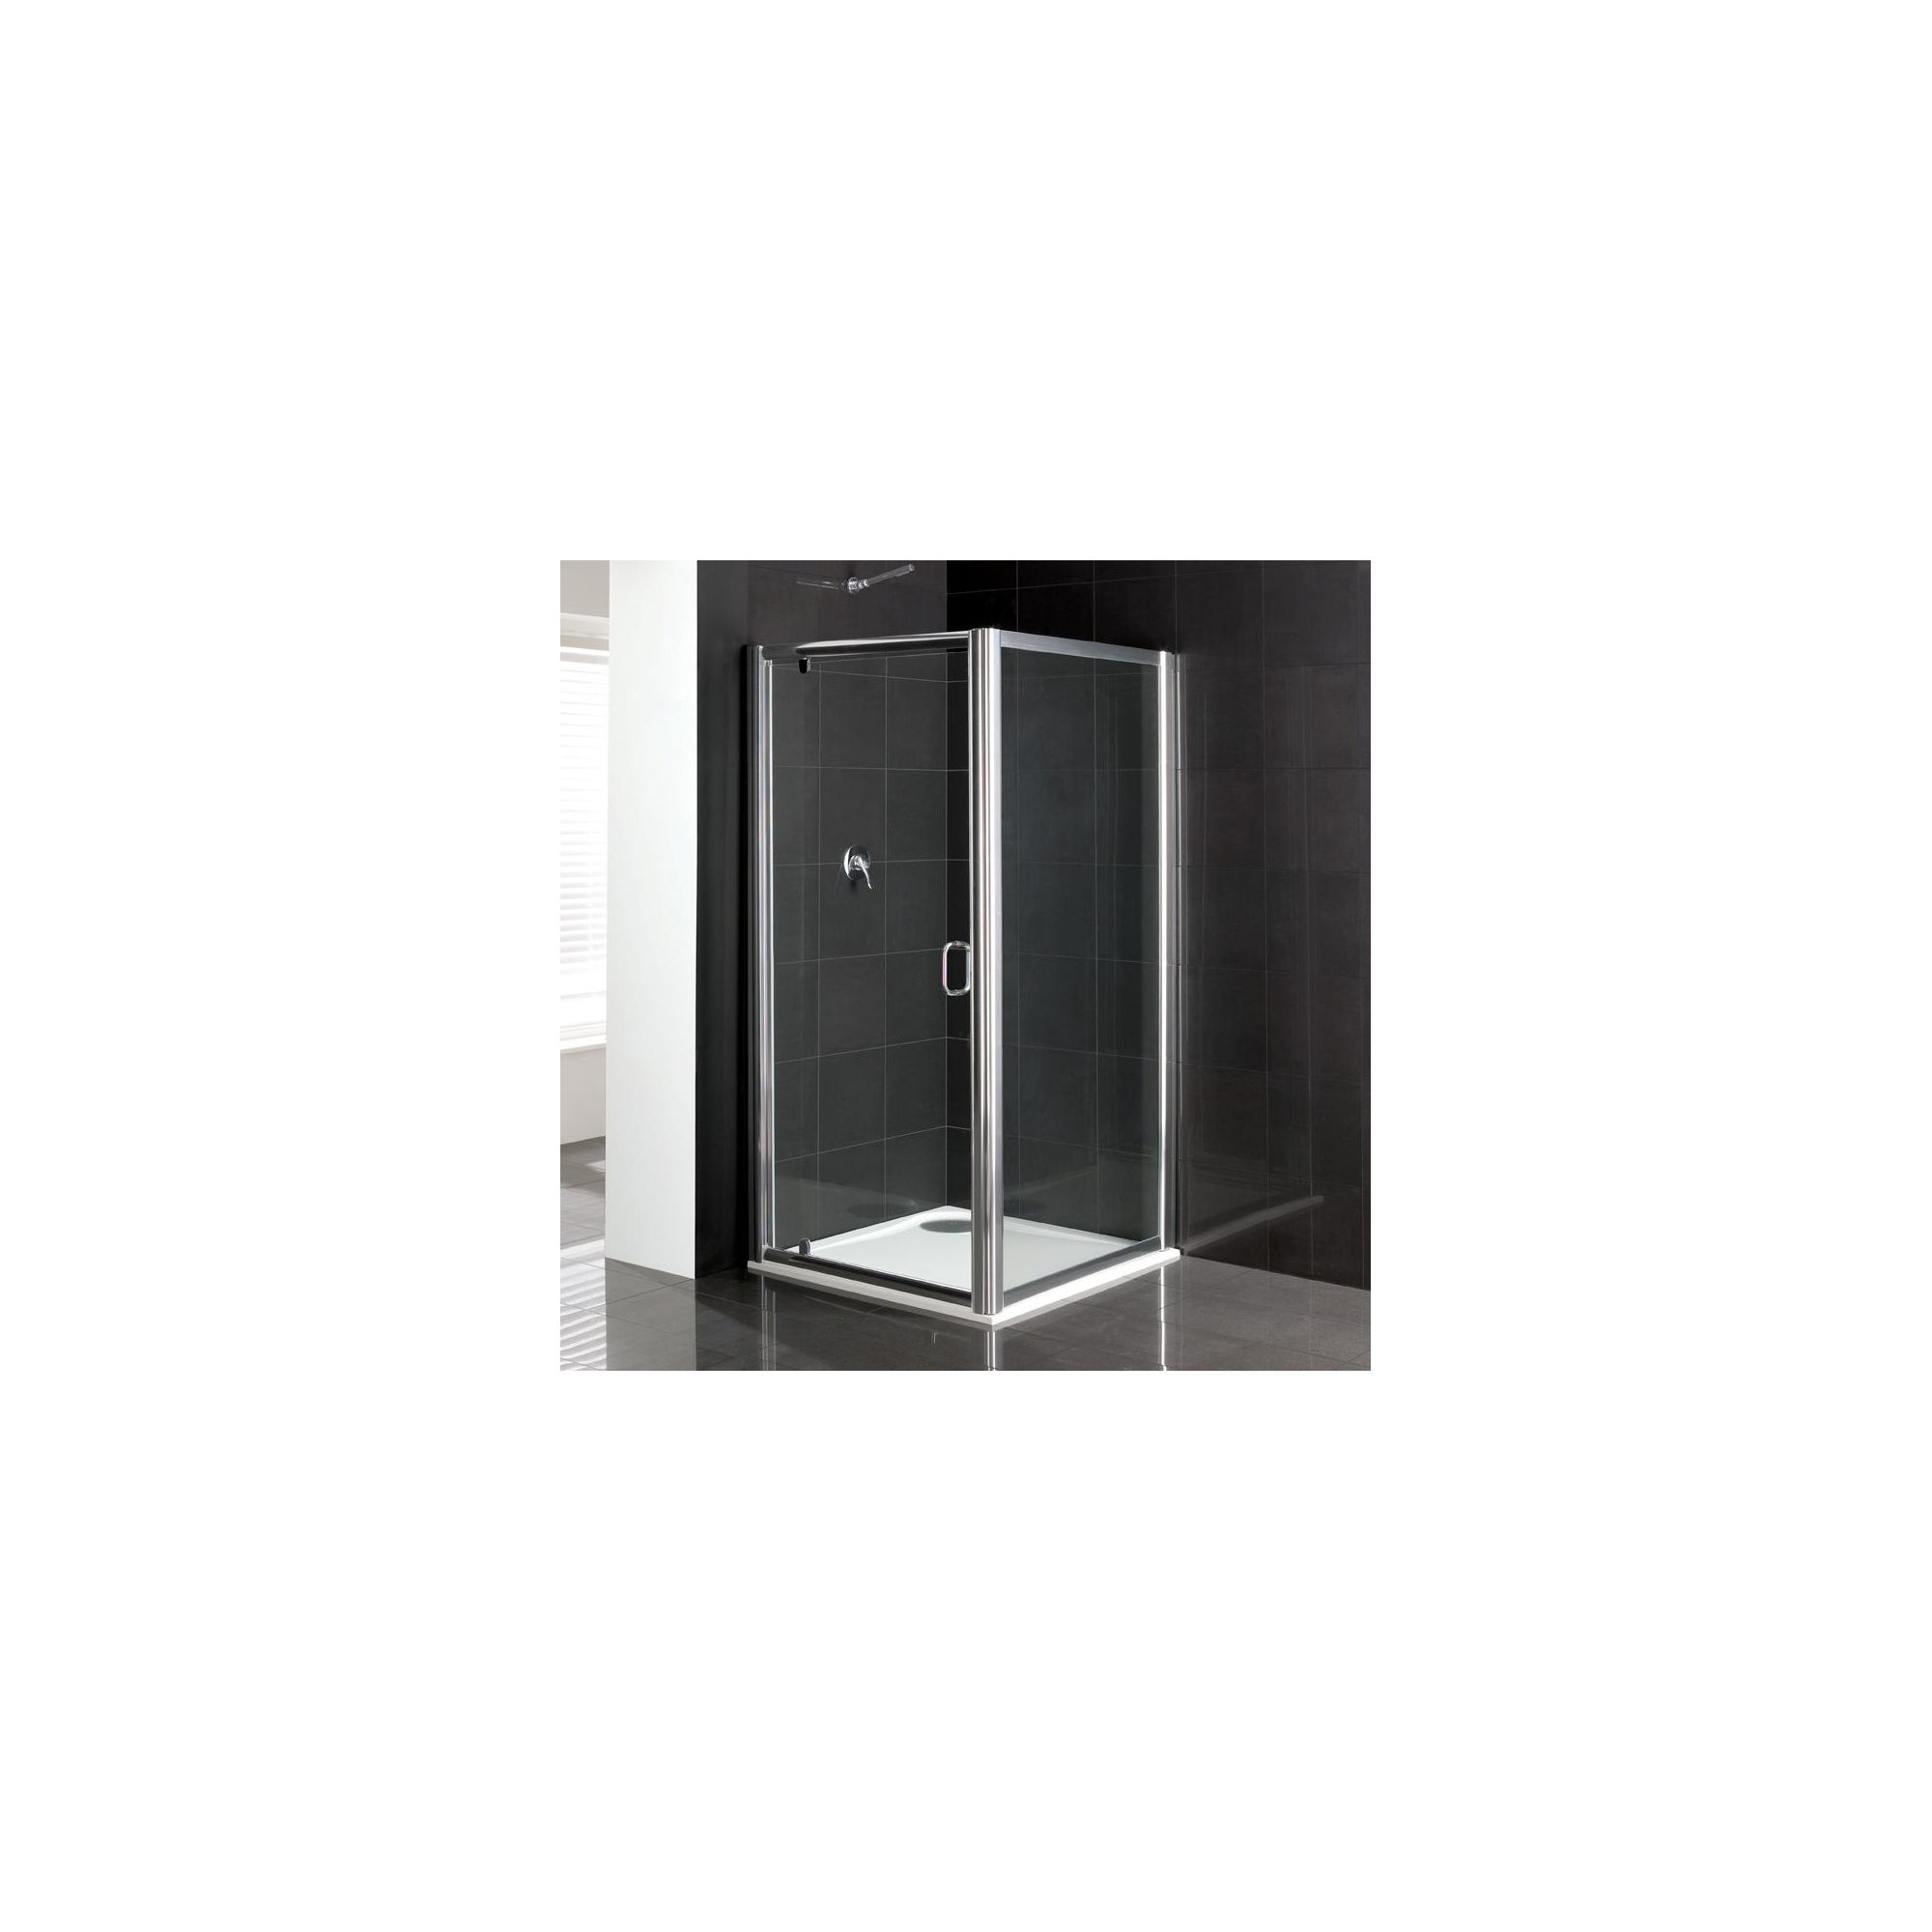 Duchy Elite Silver Pivot Door Shower Enclosure with Towel Rail, 760mm x 760mm, Standard Tray, 6mm Glass at Tescos Direct